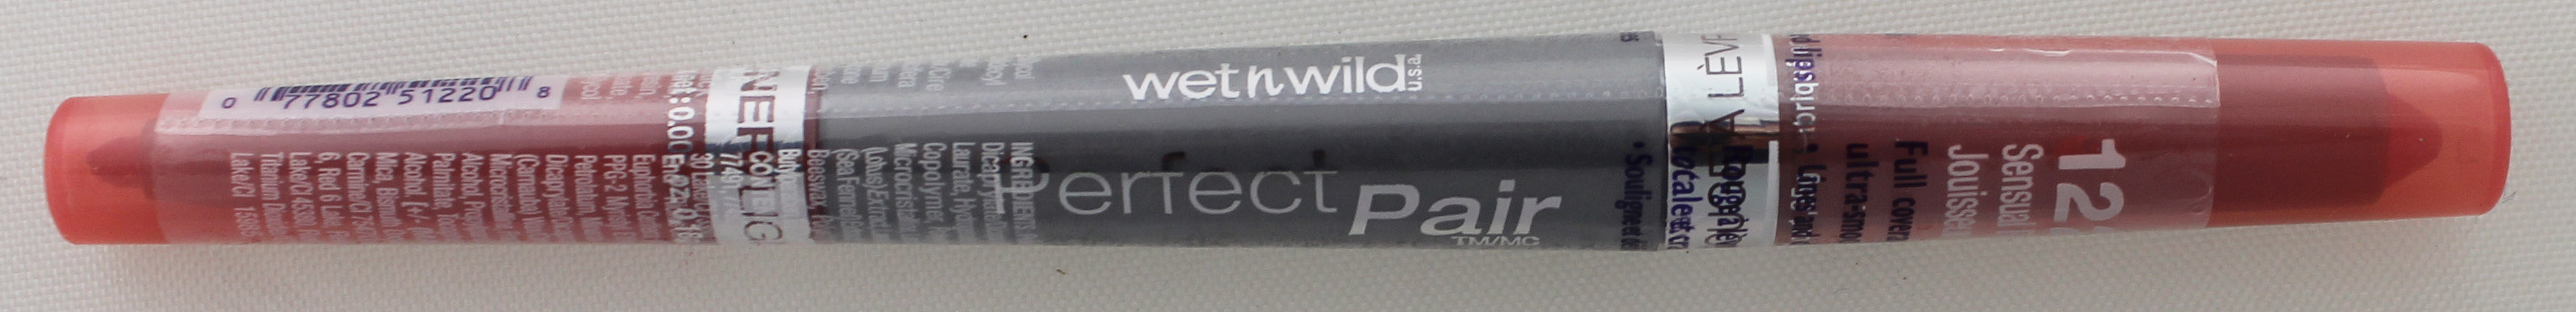 Wet N Wild Perfect Pair Lip Wand - Sensual Peach